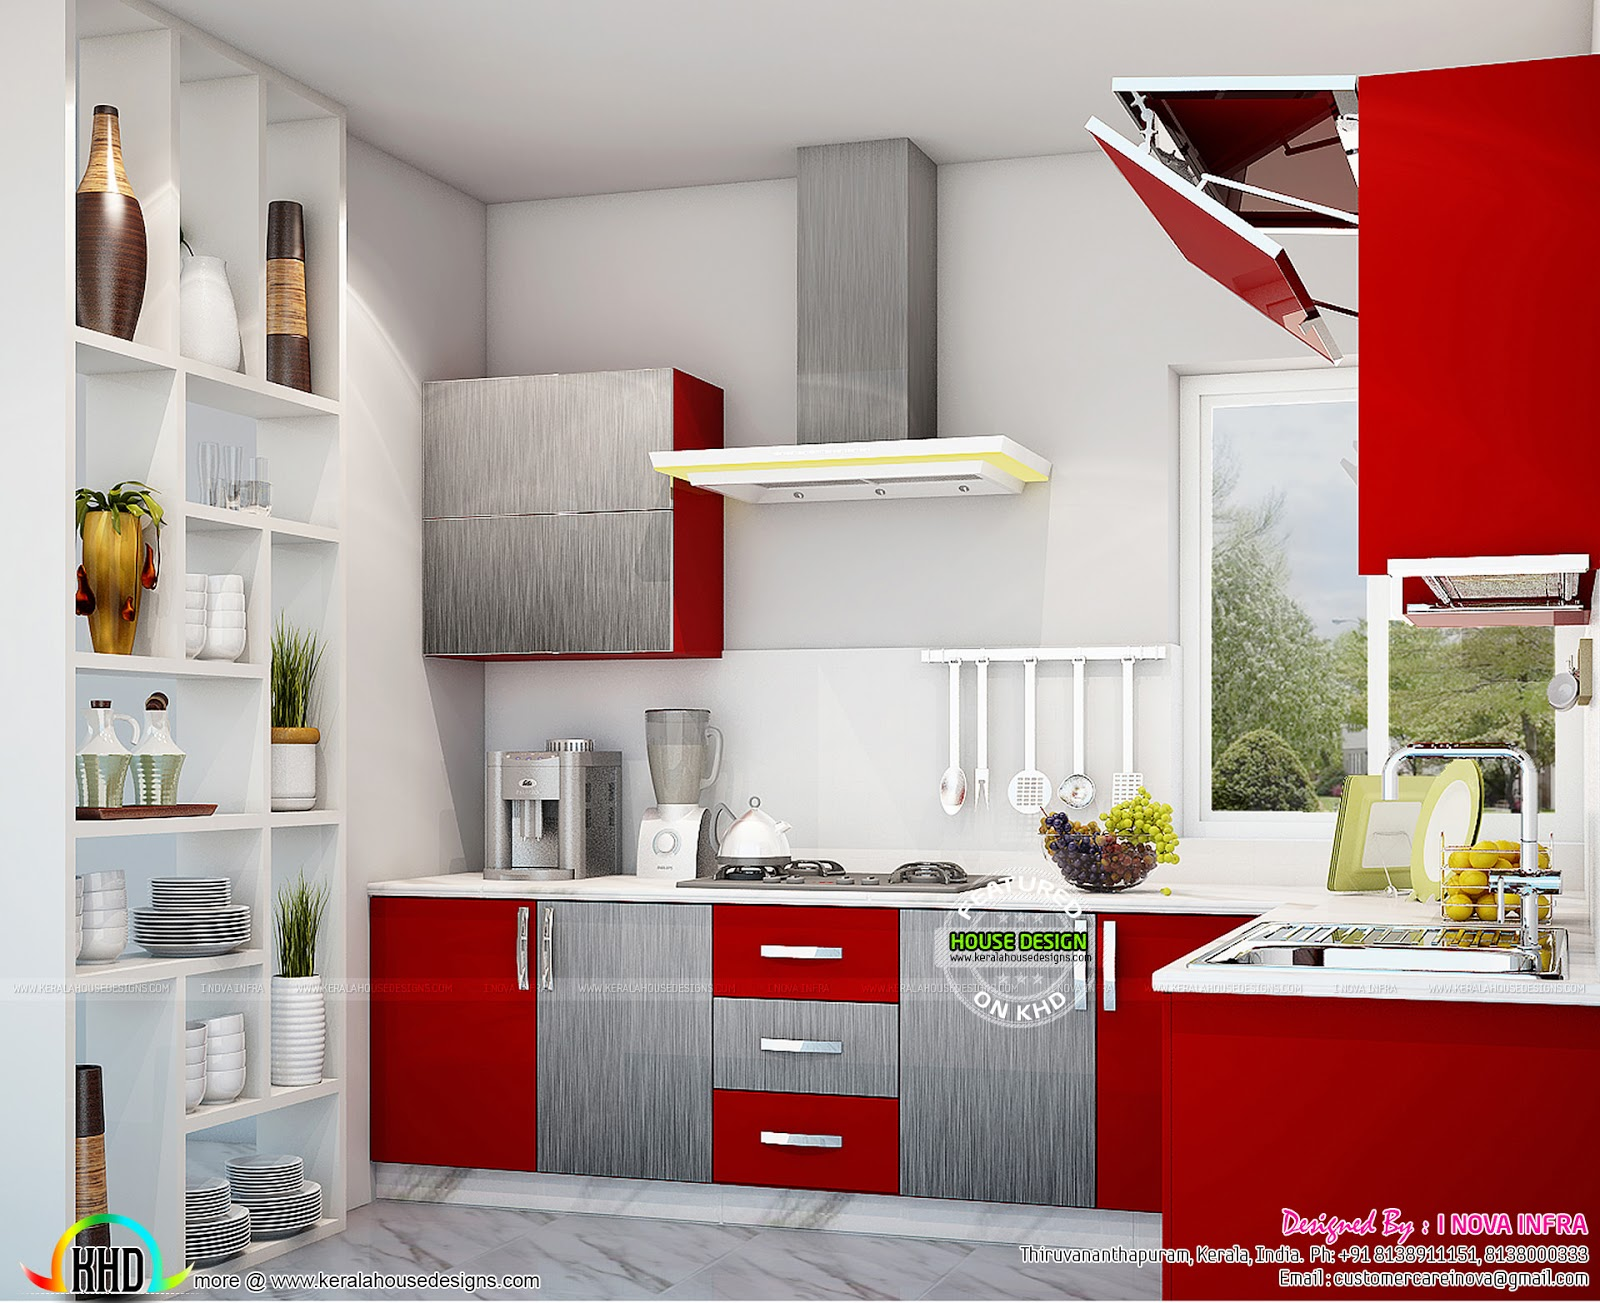 Kitchen interior works at trivandrum kerala home design and floor plans - Kitchen interior desing ...